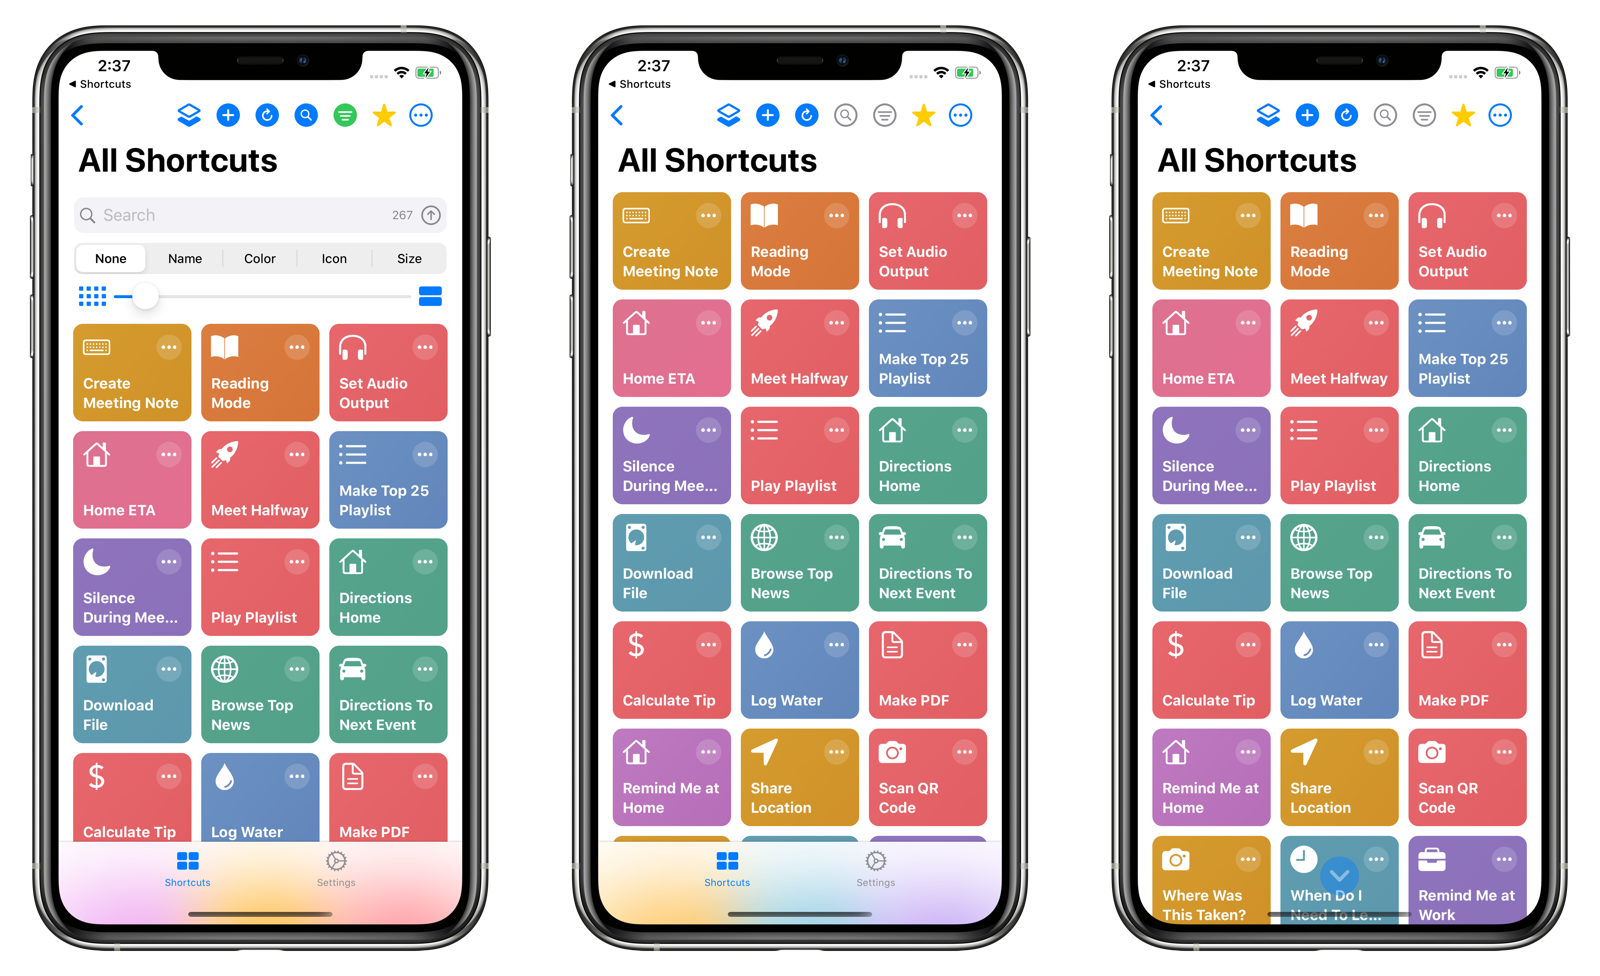 Maximizing screen real estate for the Shortcuts View